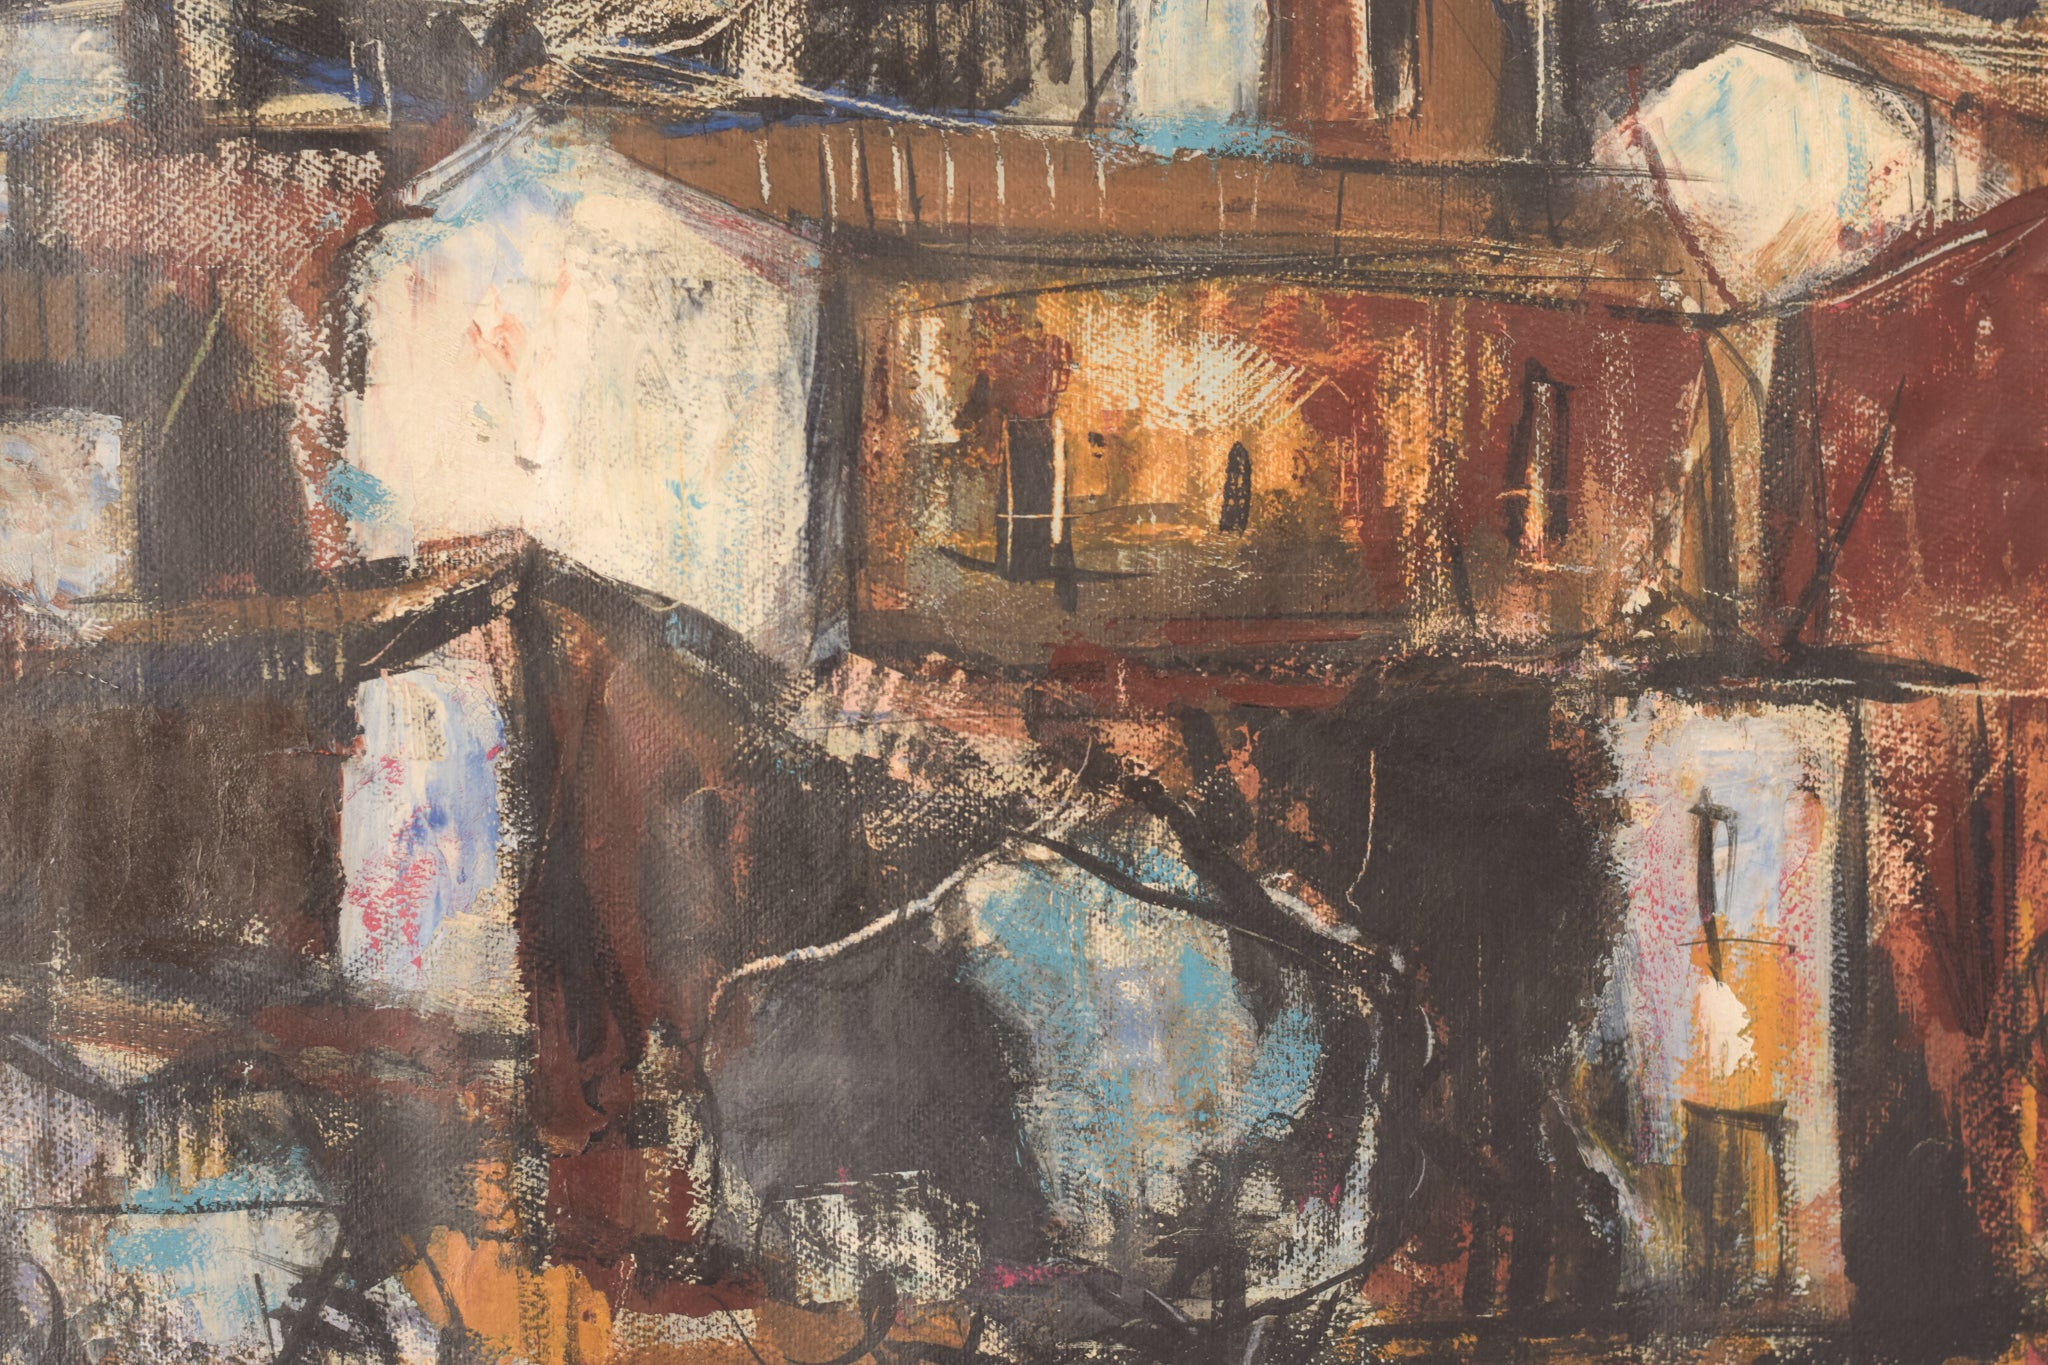 Modernist Painting of a Town in Mixed Media